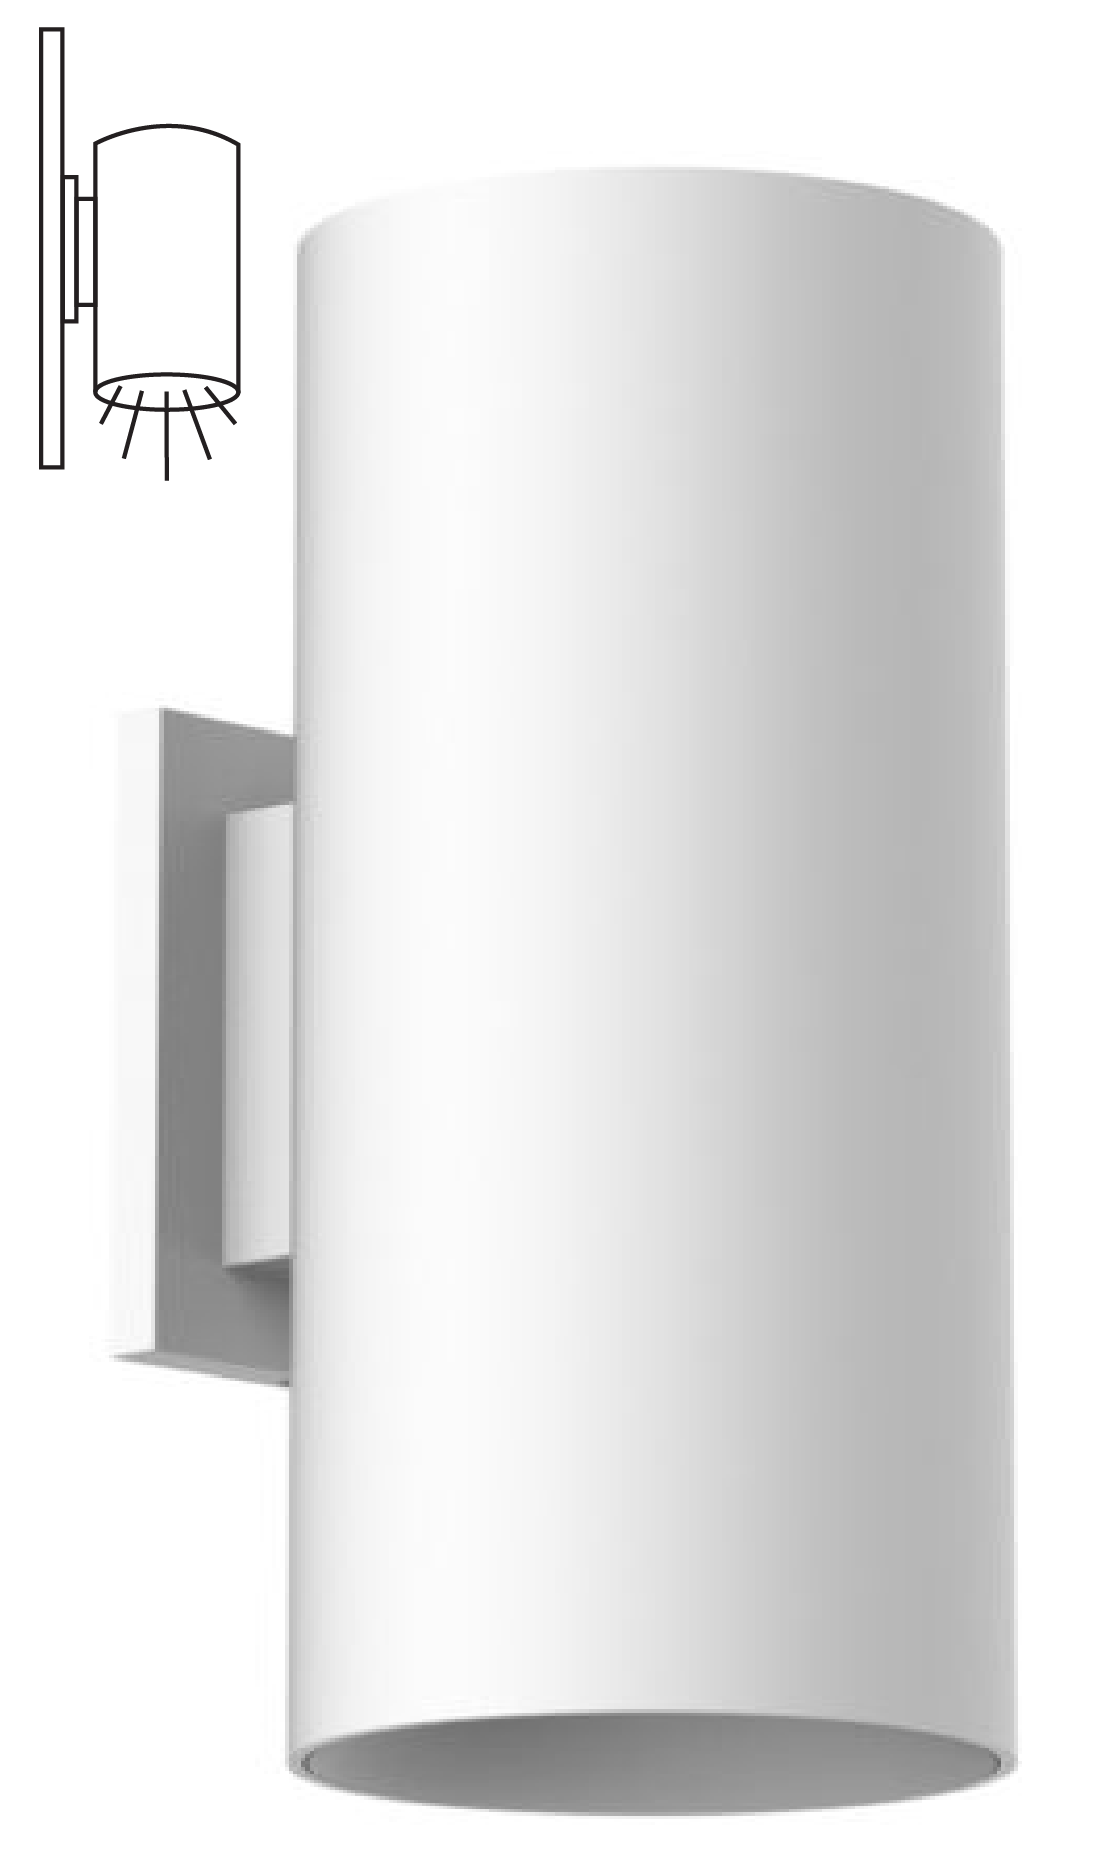 Alcon Lighting 11237-W Cilindro II Architectural LED Medium Modern ...